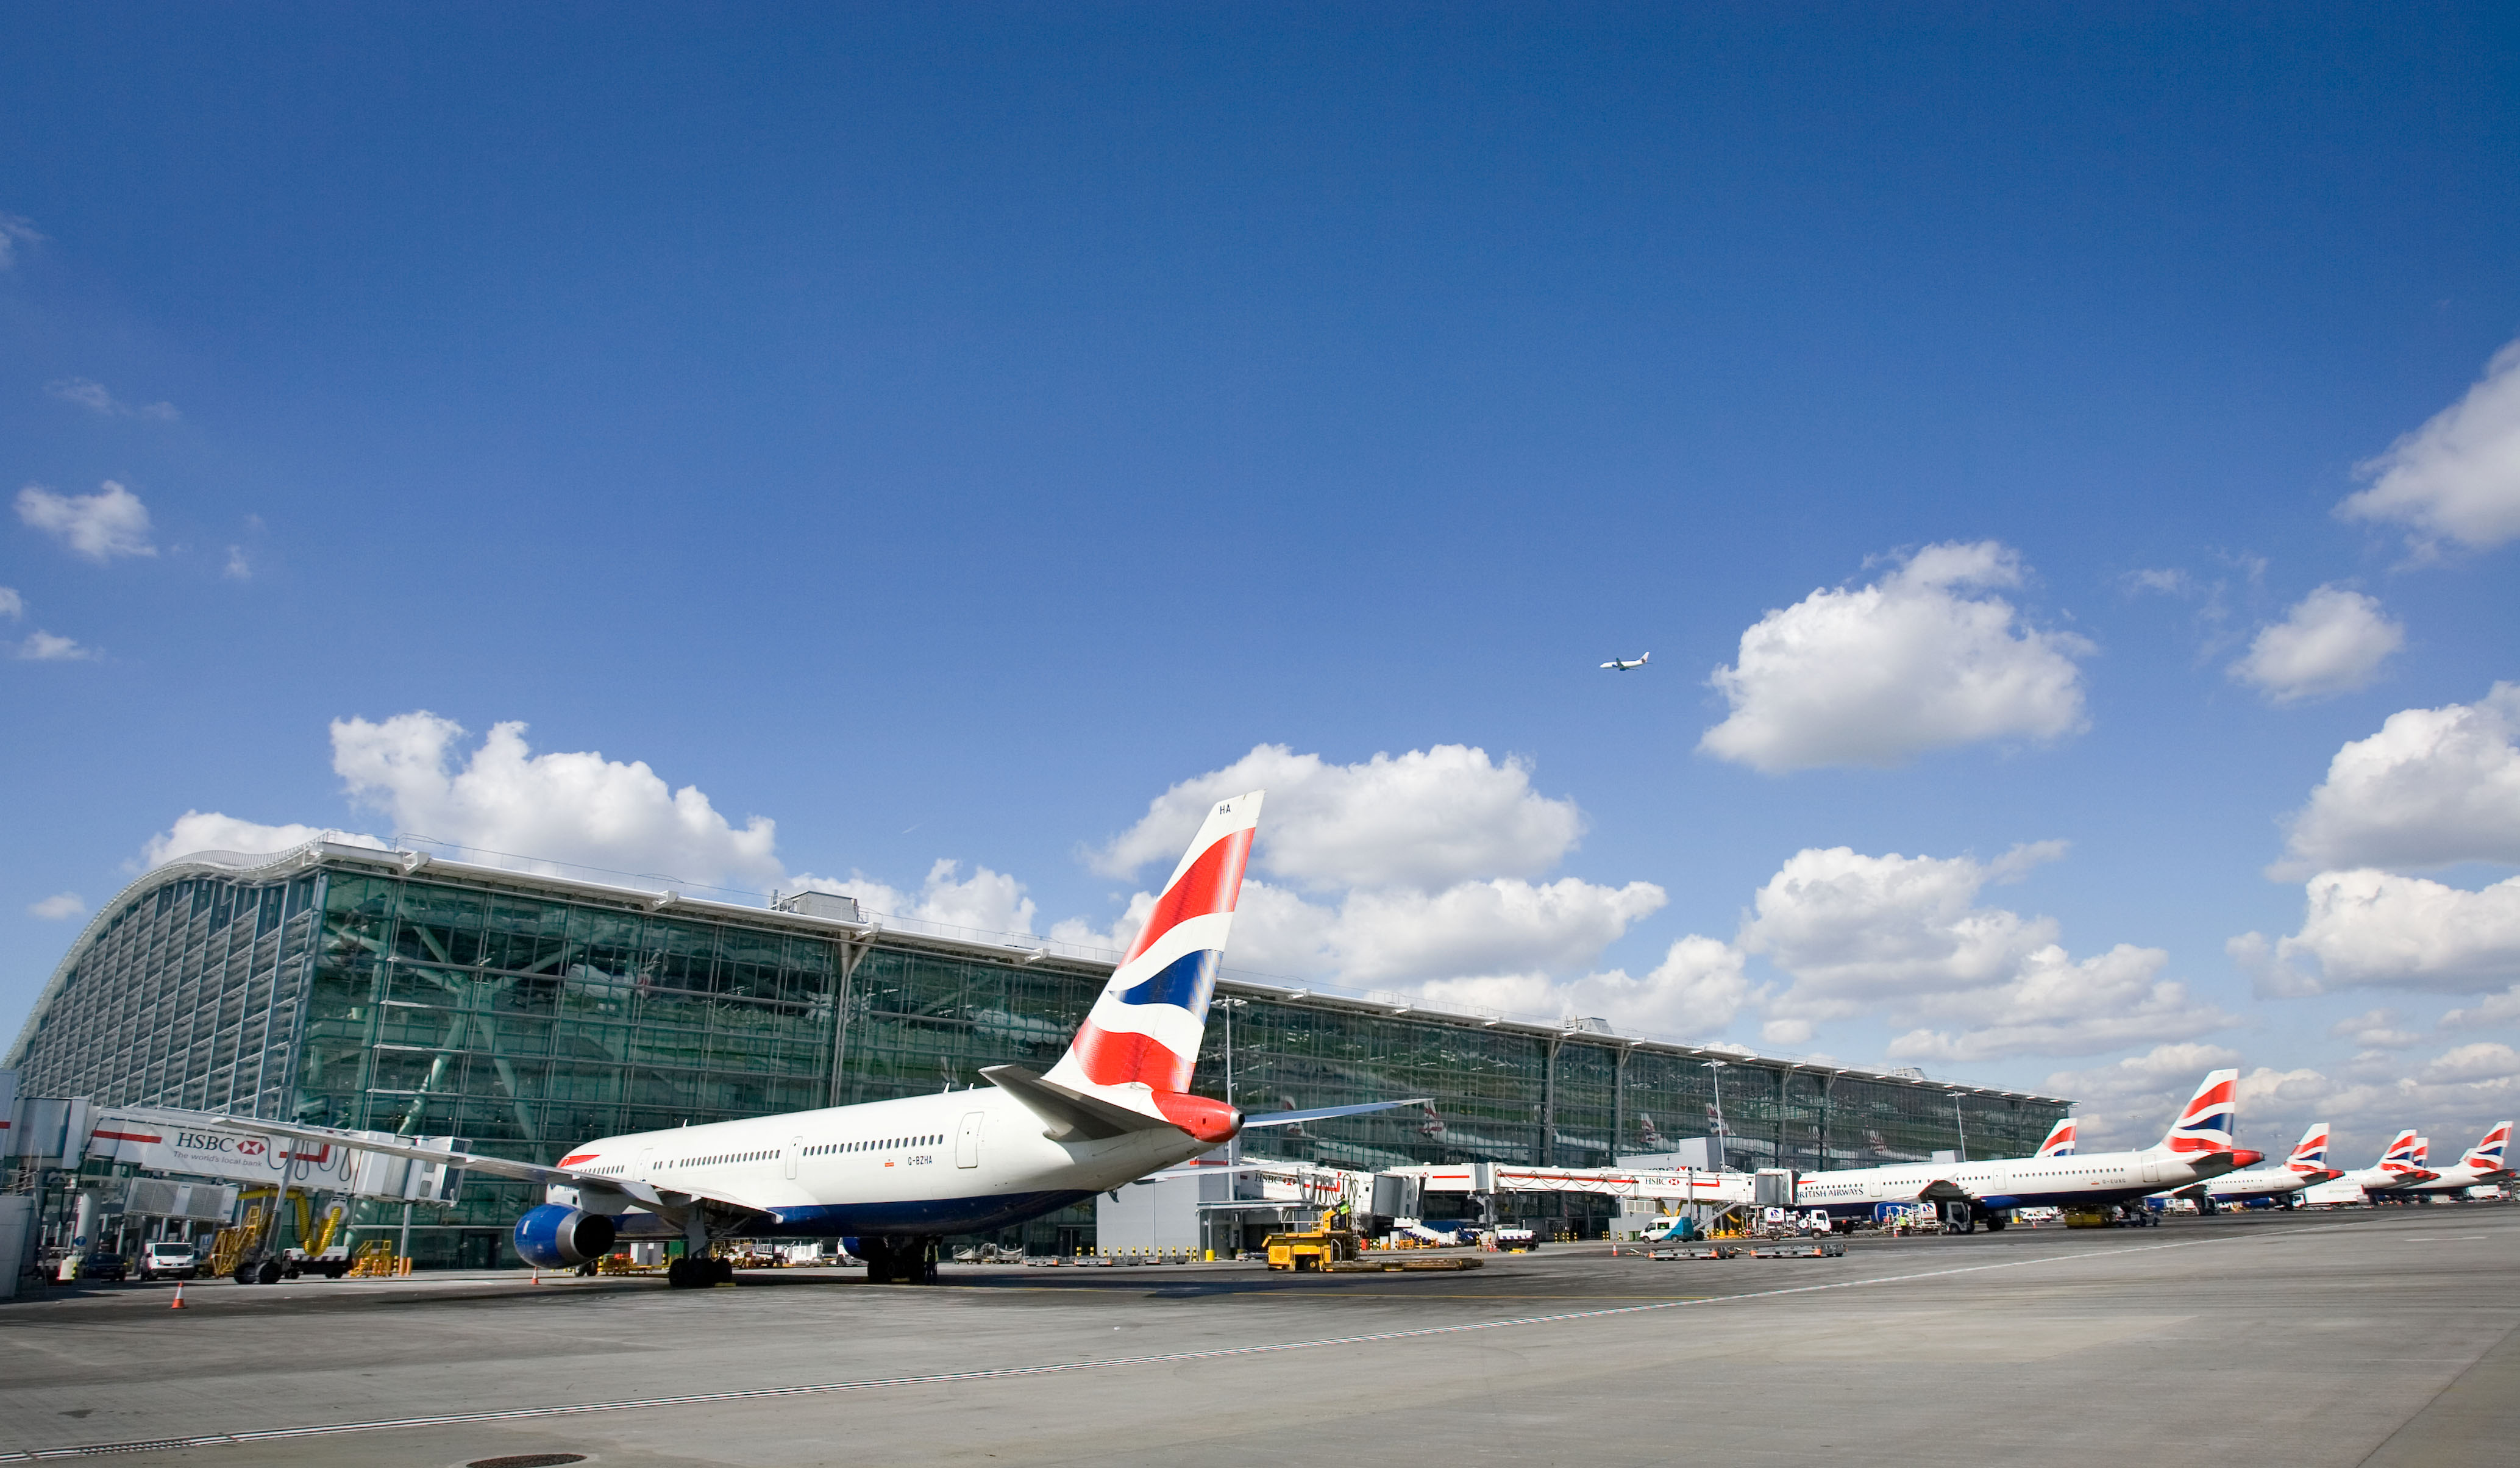 London Heathrow named host airport of the 2012 Olympic Games